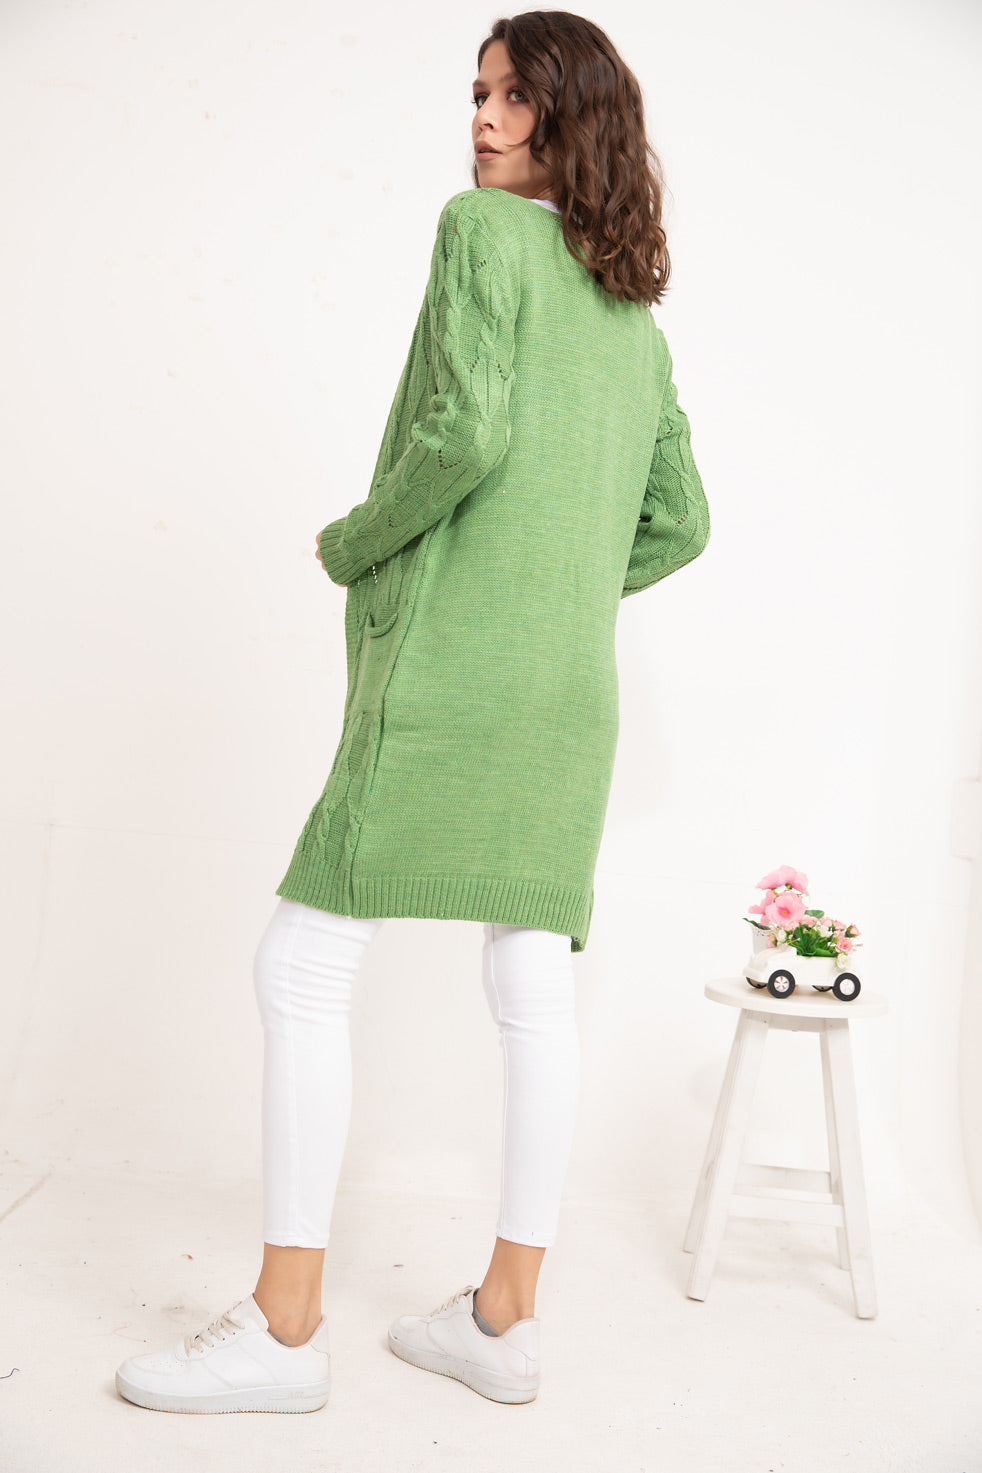 Green Patterned knitwear Cardigan